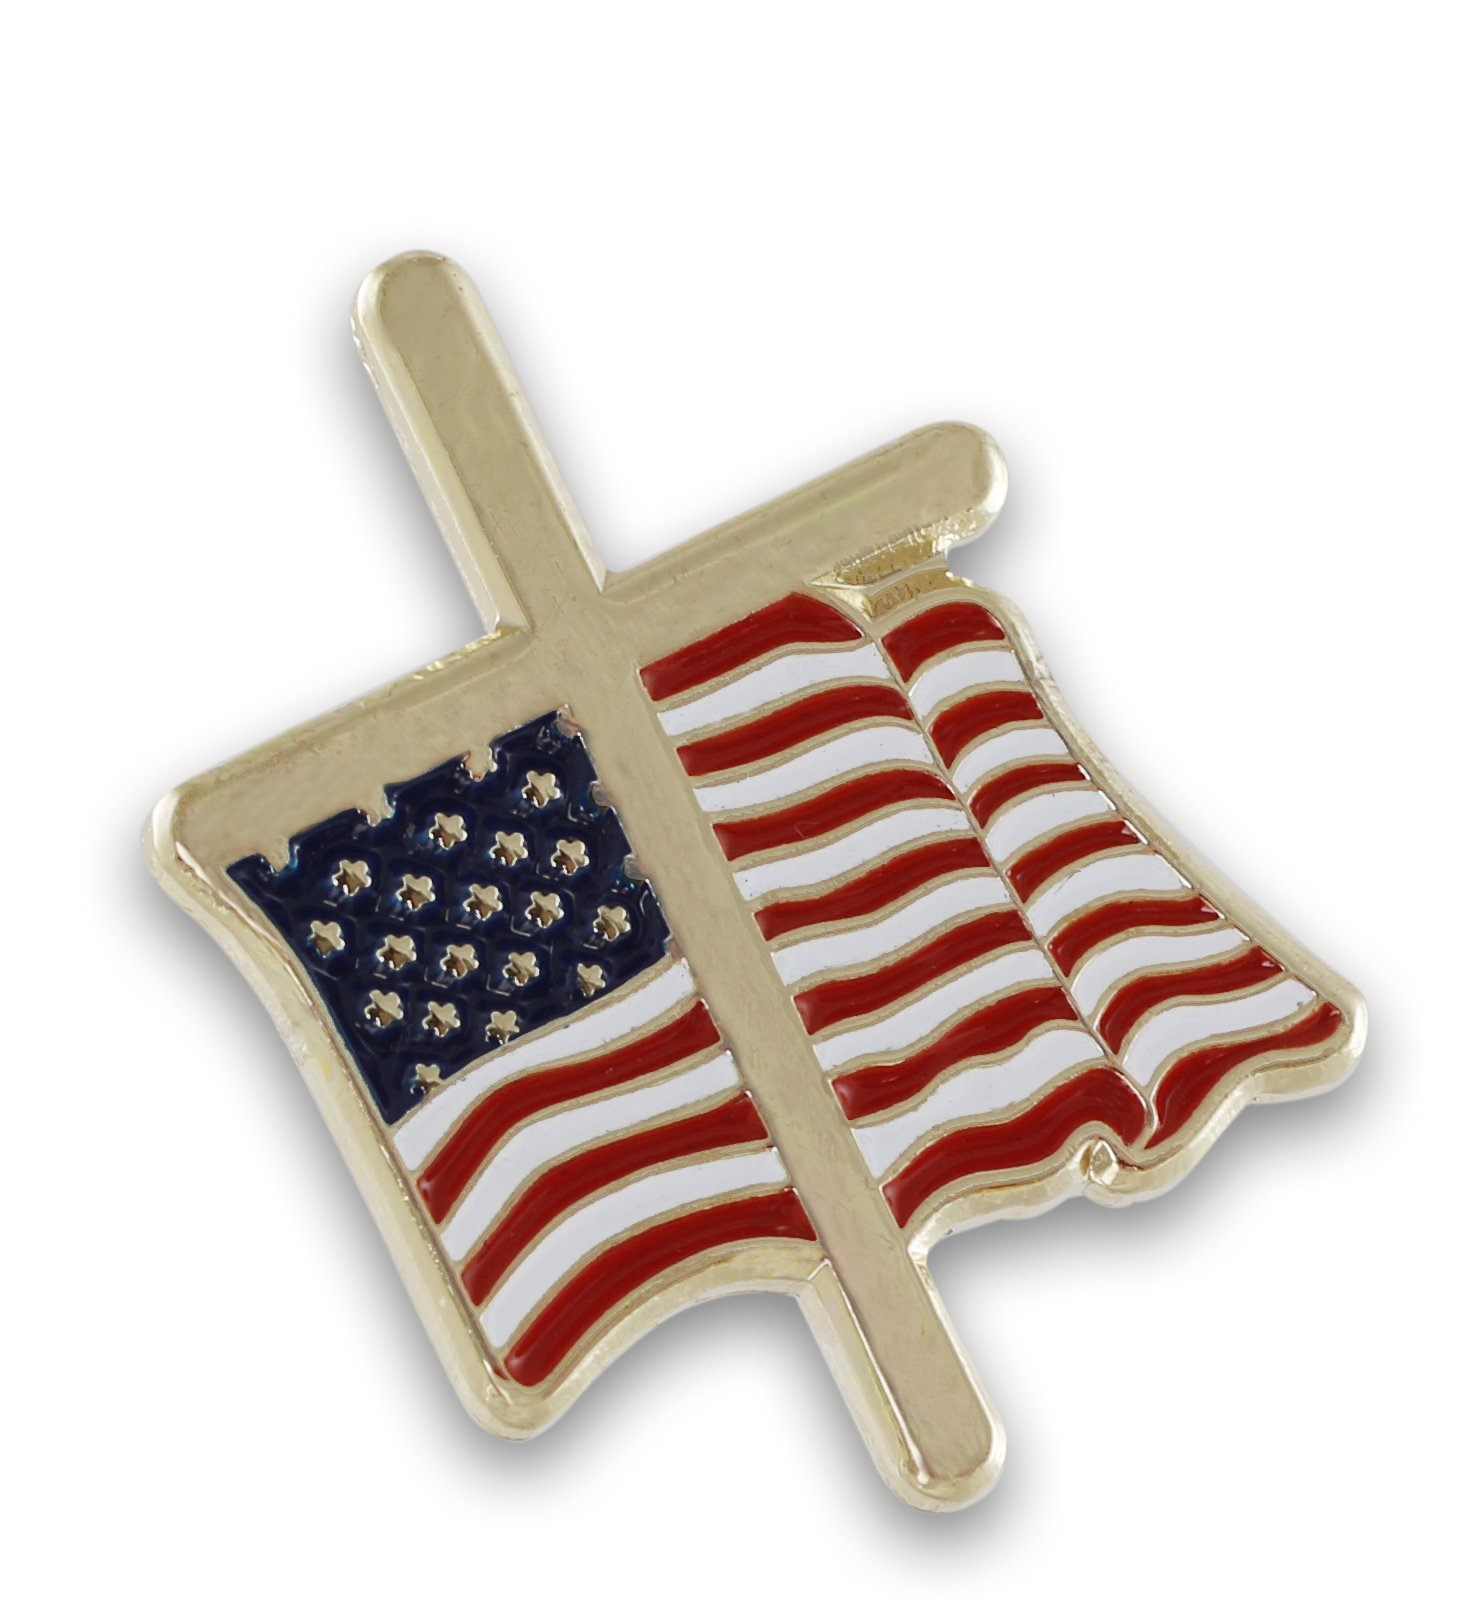 American Flag with Religious Cross Lapel Pin (50 Pins) by Forge (Image #6)